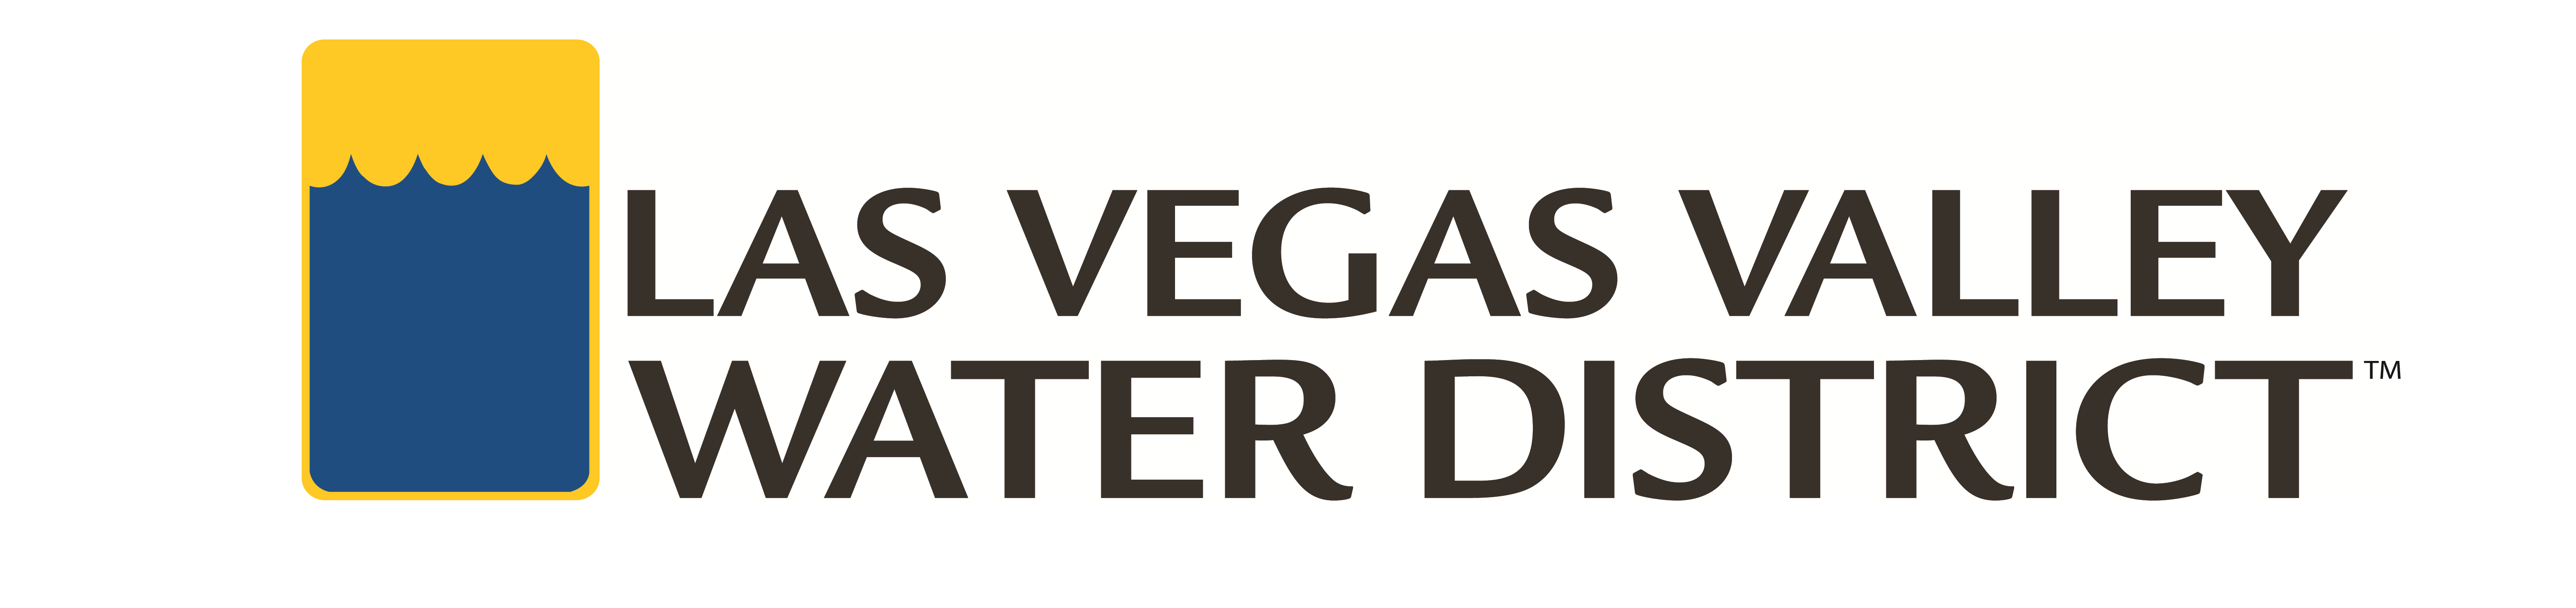 Las Vegas Valley Water District Logo.png